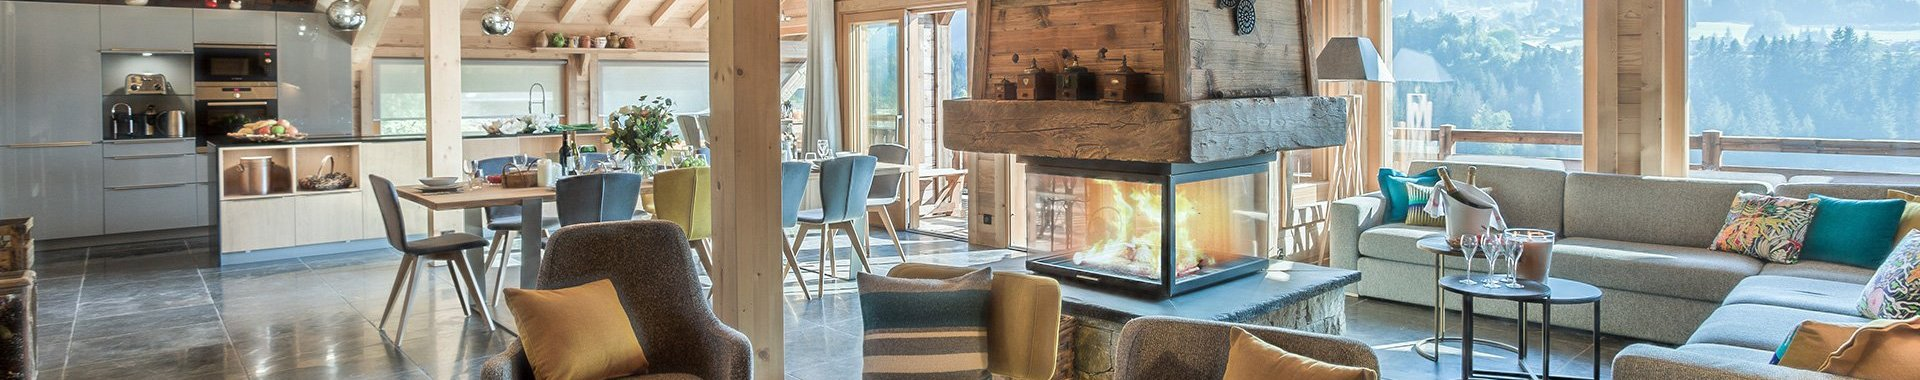 chalet-heavenly-faqs